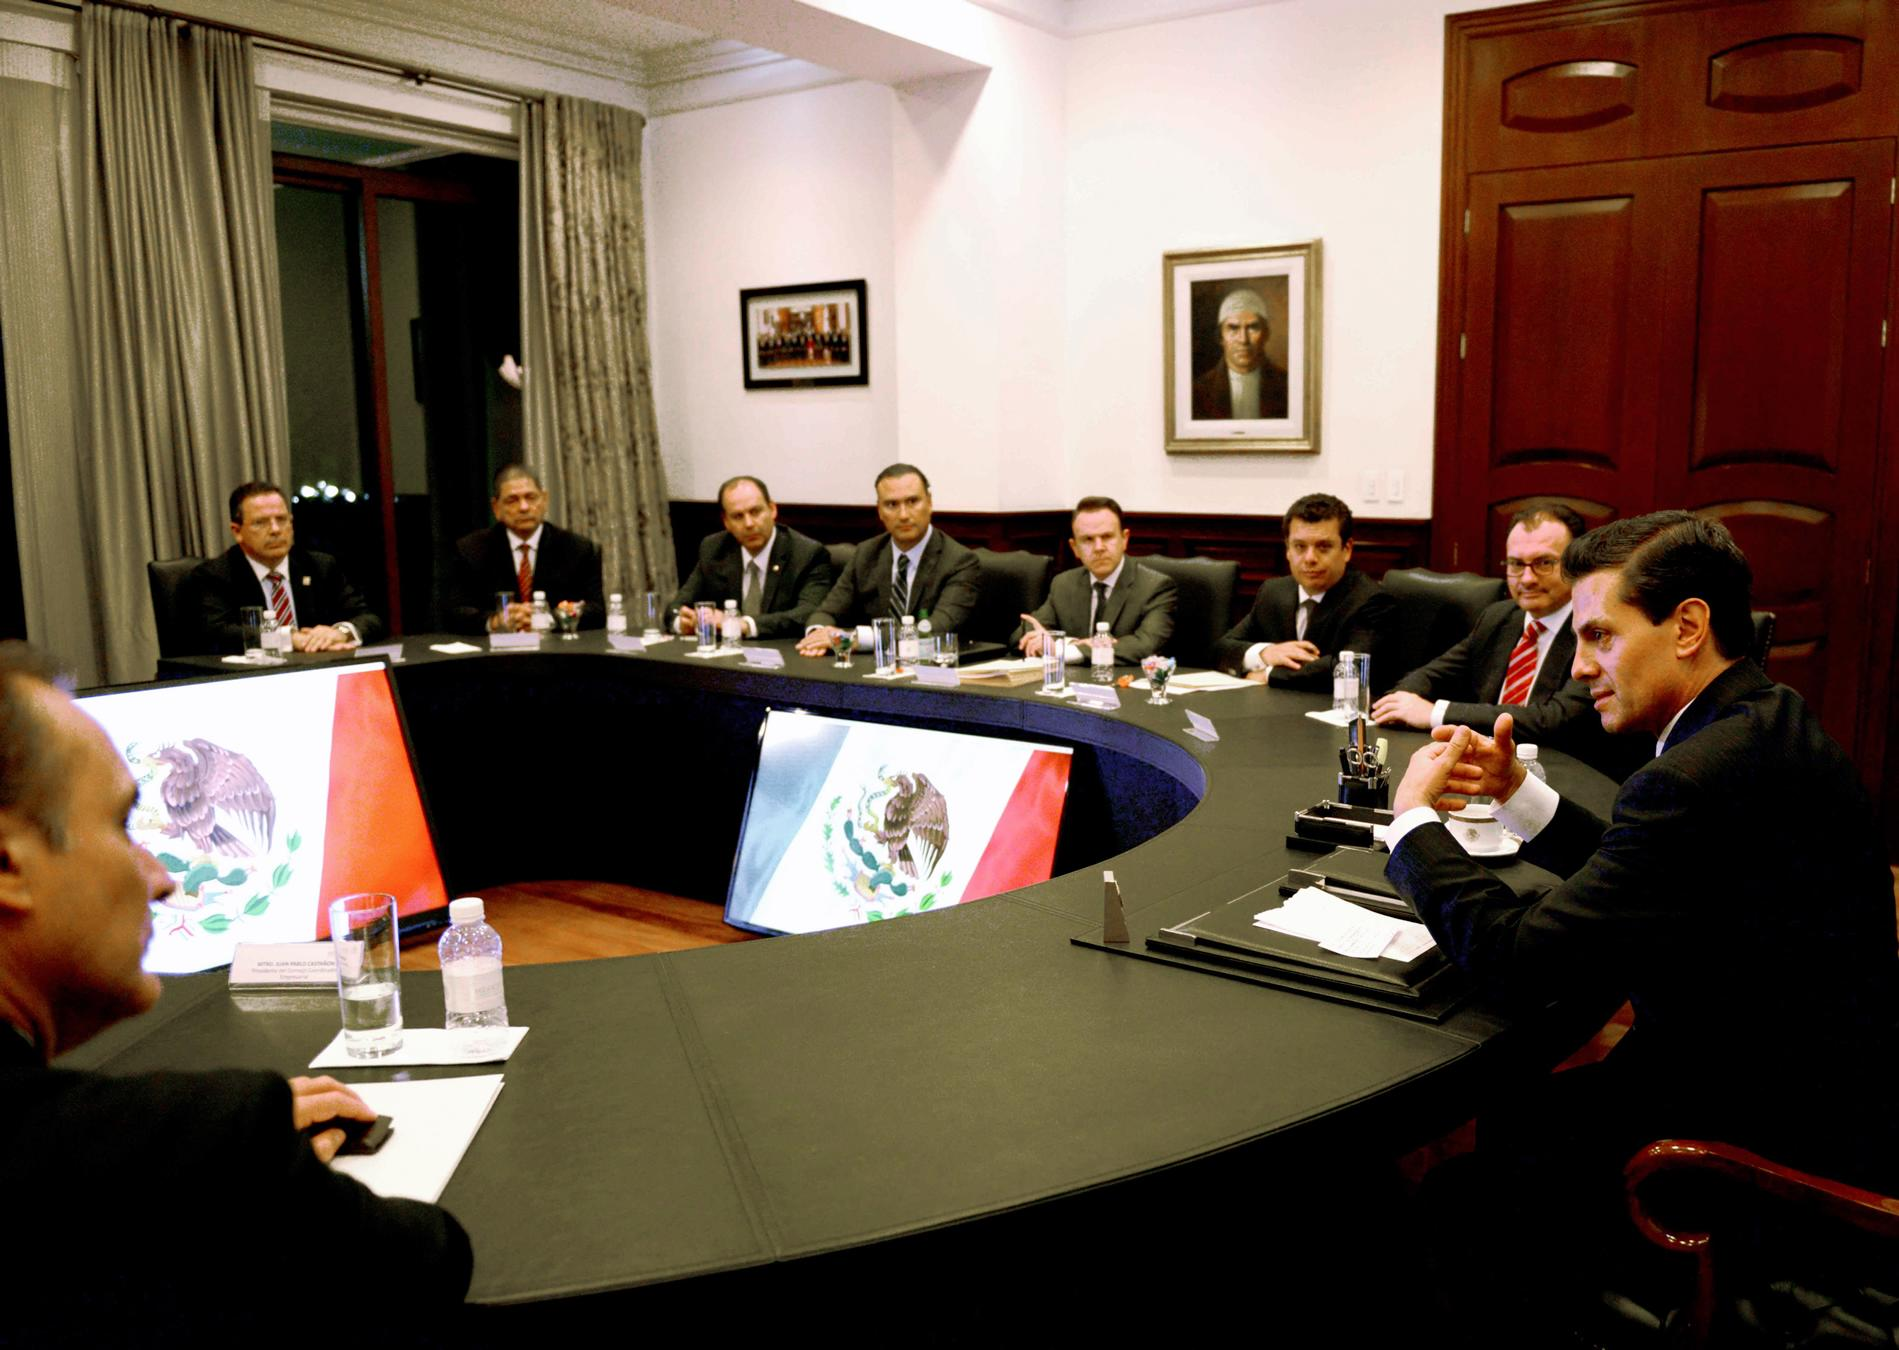 The president met with the CCE in order to discuss the National Anticorruption System and the enormous structural advance this entails.